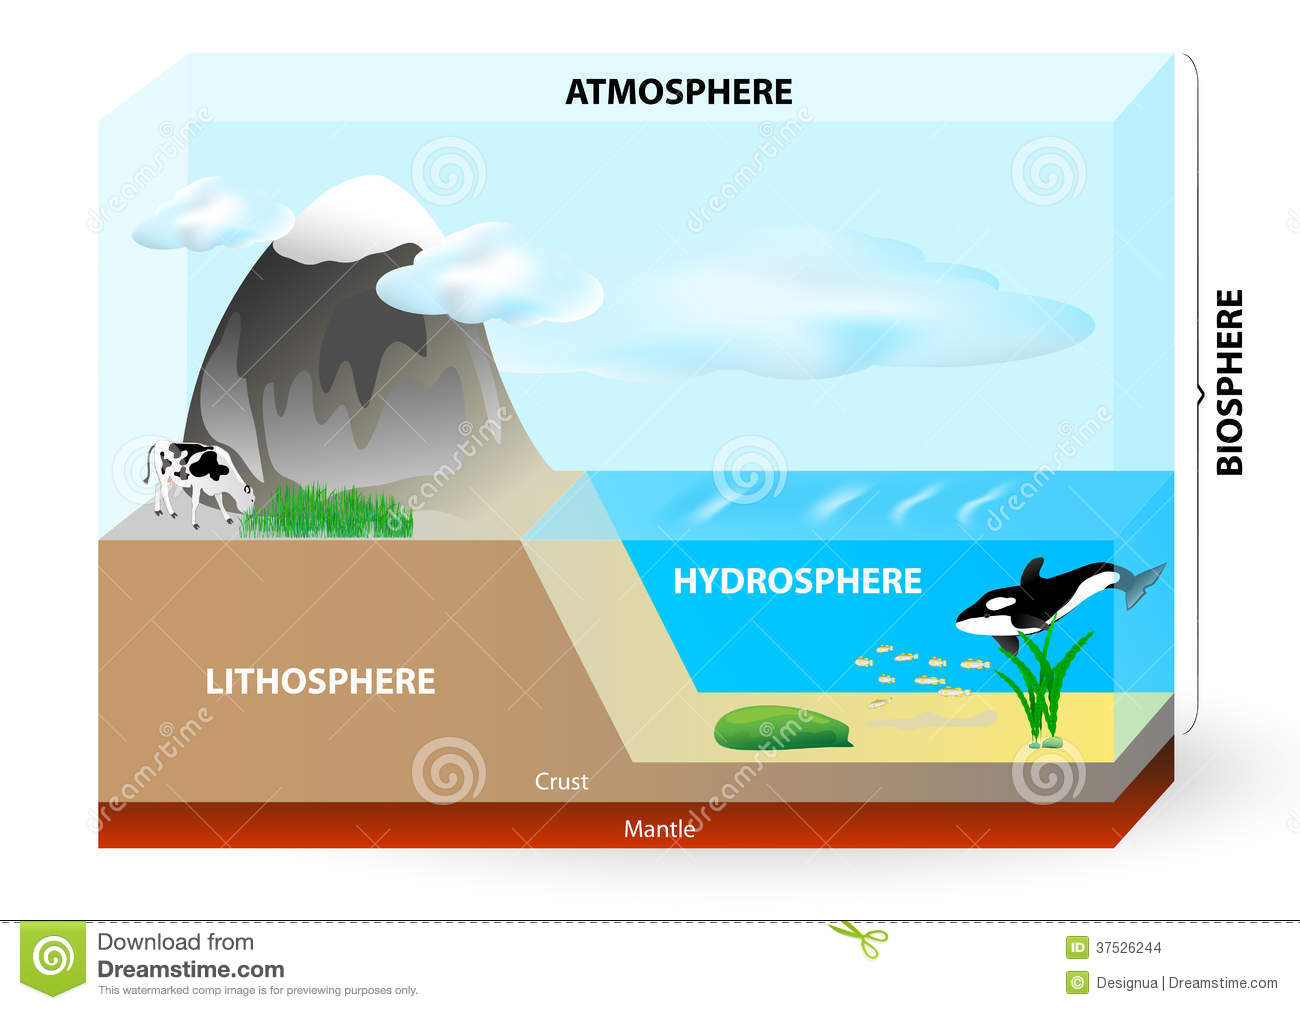 Diagram Of Atmosphere Lithosphere And Hydrosphere - Auto Wiring ...